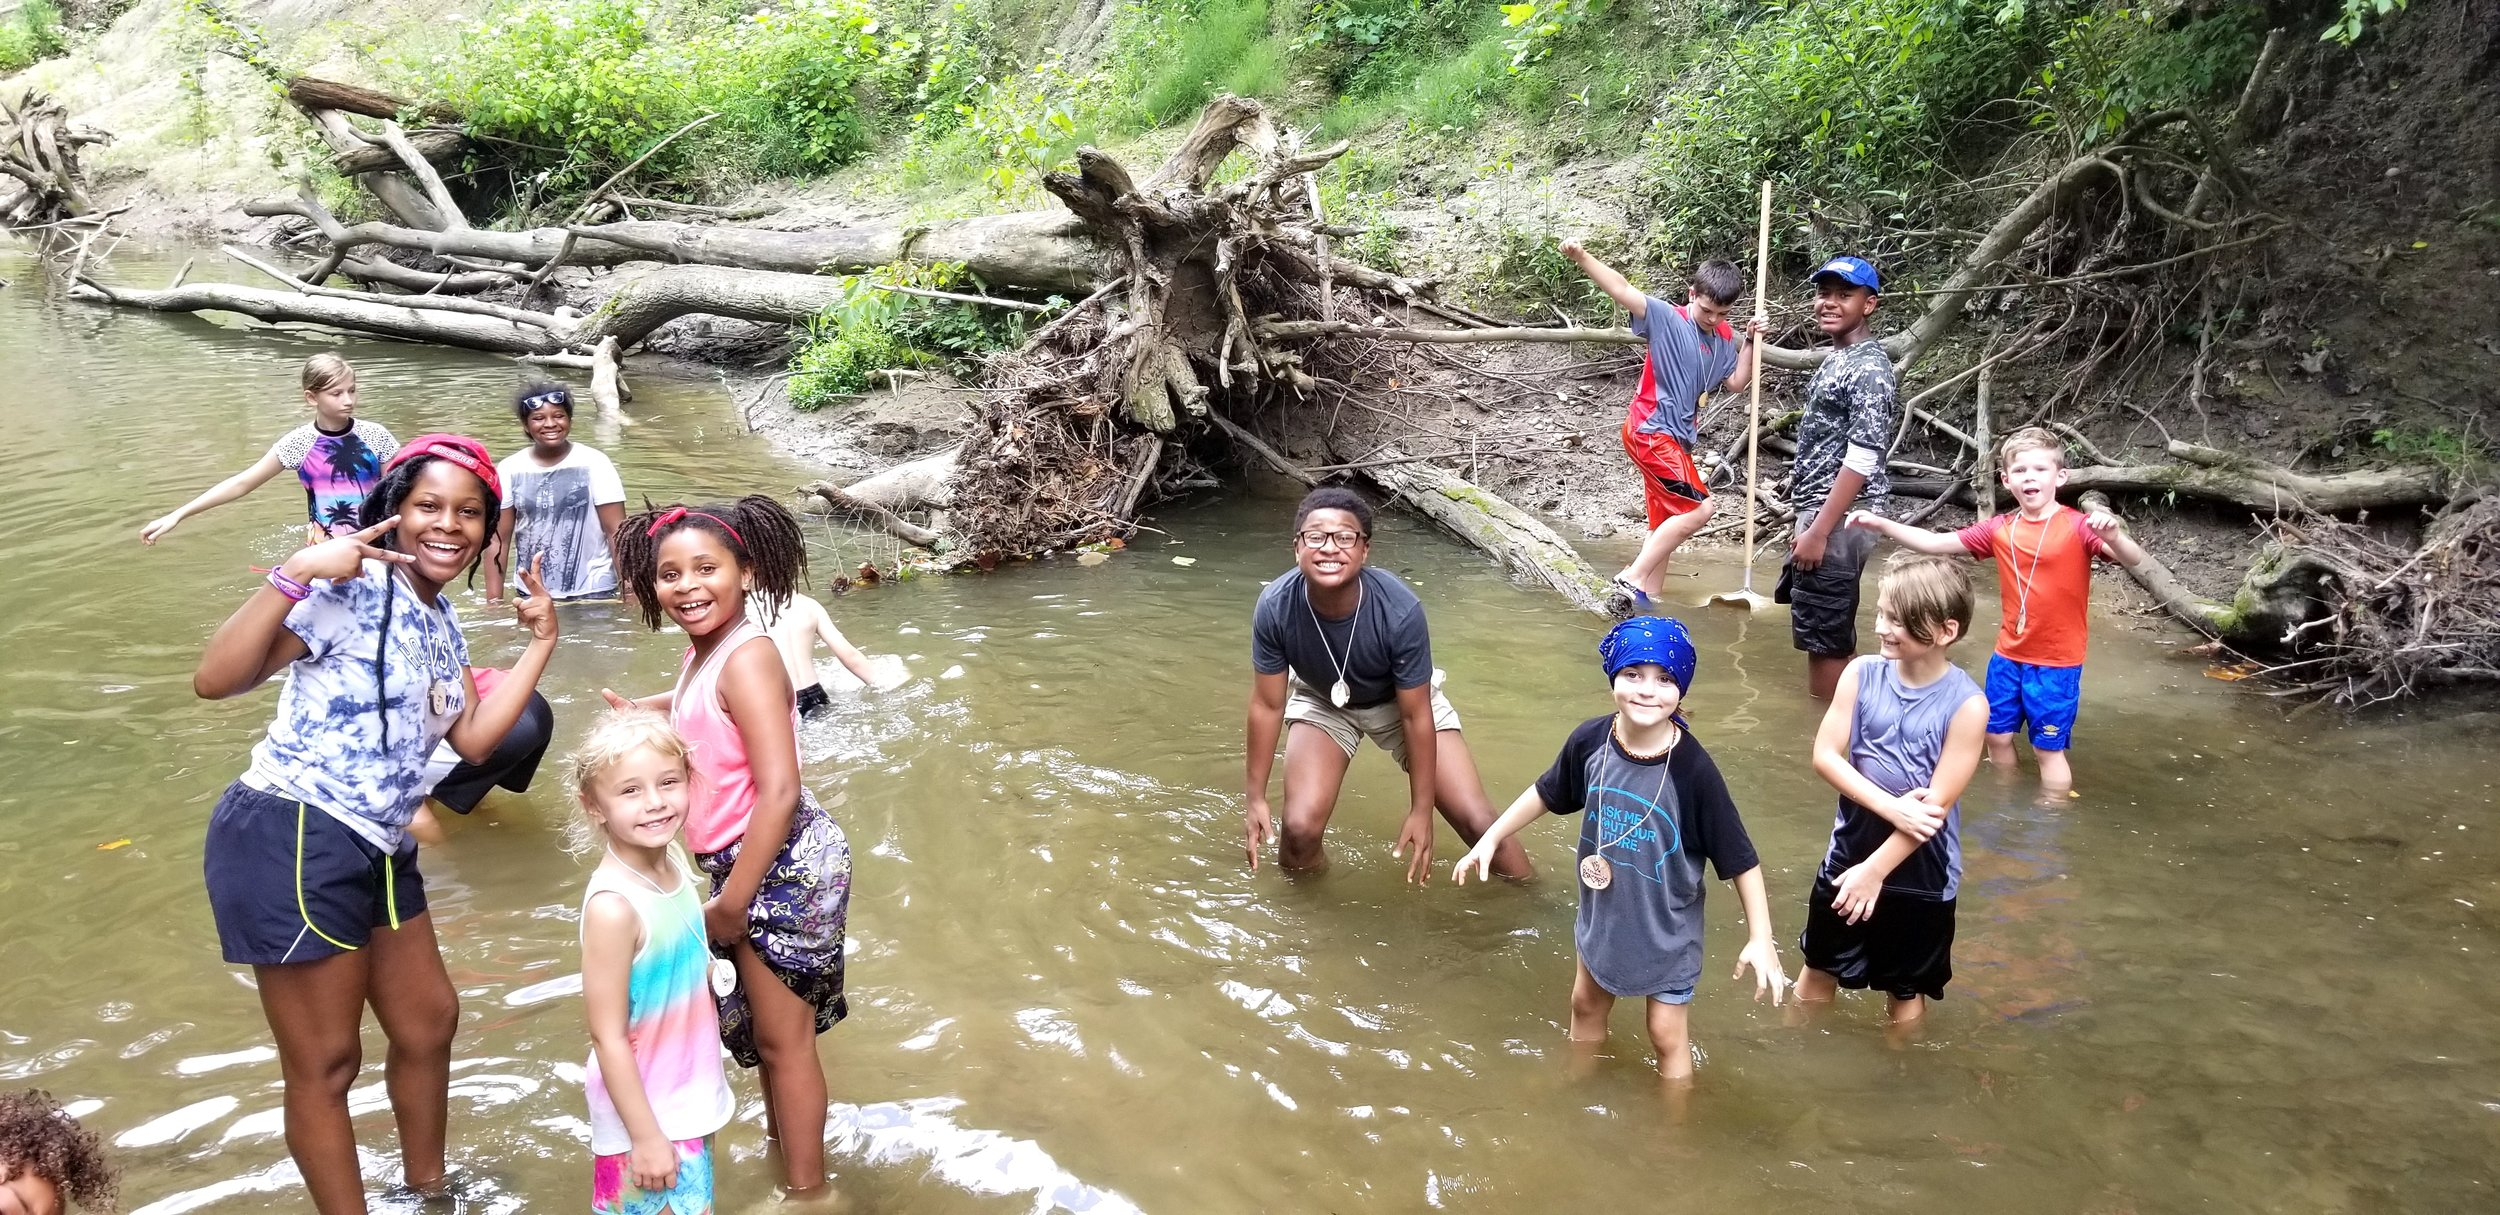 For the first time, we decided we'd simply spend a day in nature. Eagle Creek Park, where the PLC is located, has lots of that! So here are the Week One campers, enjoying a creek. It was a great day of getting wet and dirty, while appreciating the natural world.